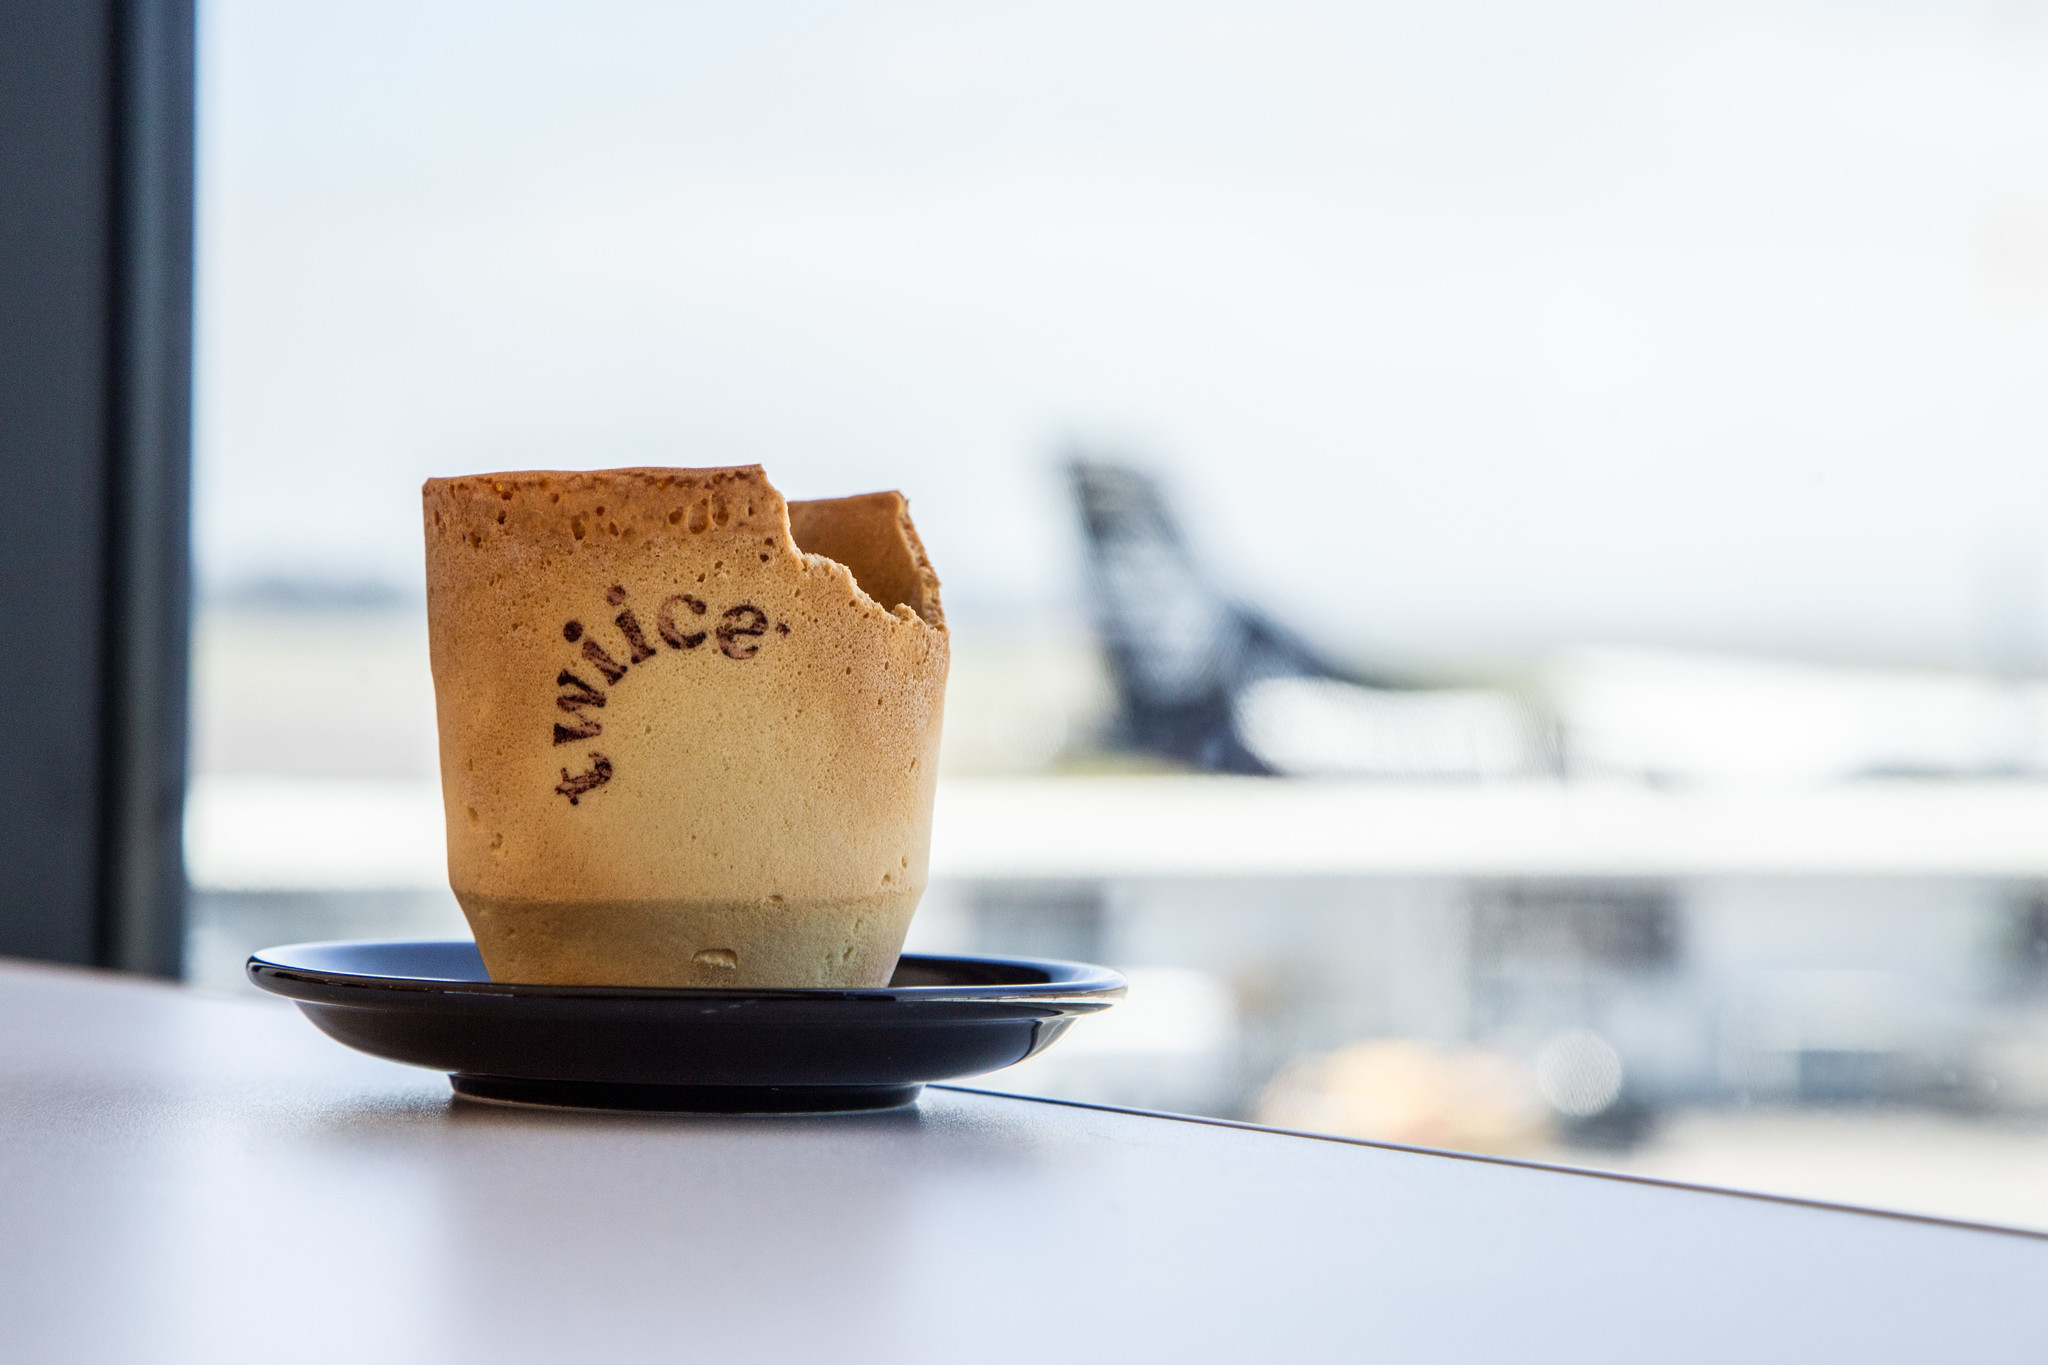 New Zealand airline testing edible biscotti coffee cups